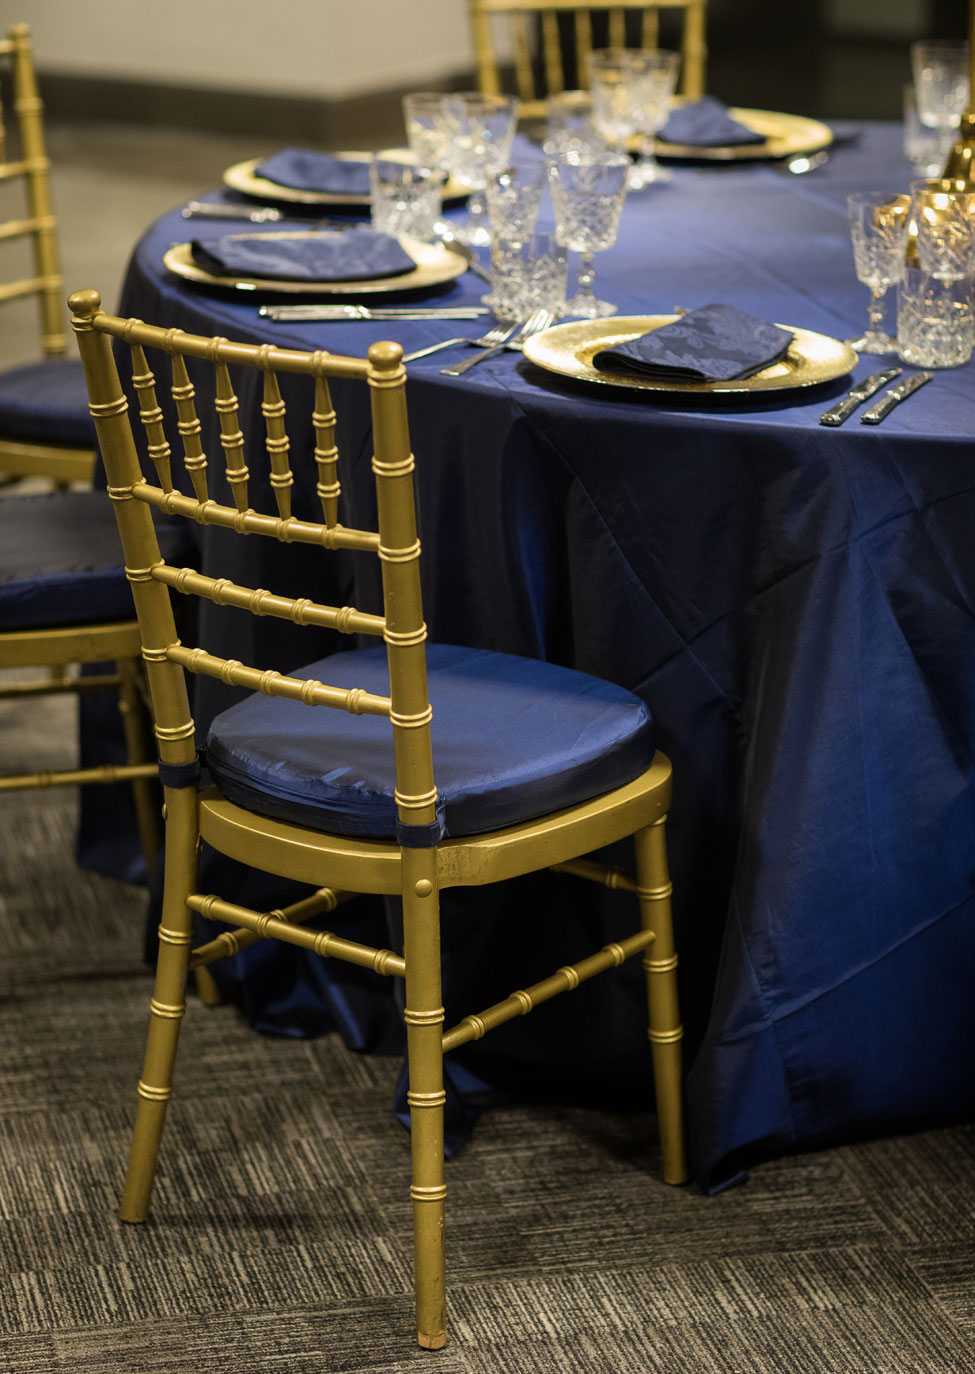 Styling featuring Midnight Blue Taffeta table linen, Gold Starburst charger plates paired with French Navy Vintage Damask napkins, Cut Crystal glasses, Gold Candelabra and Gold Chiavari Chairs with Midnight Blue Taffeta seat pads